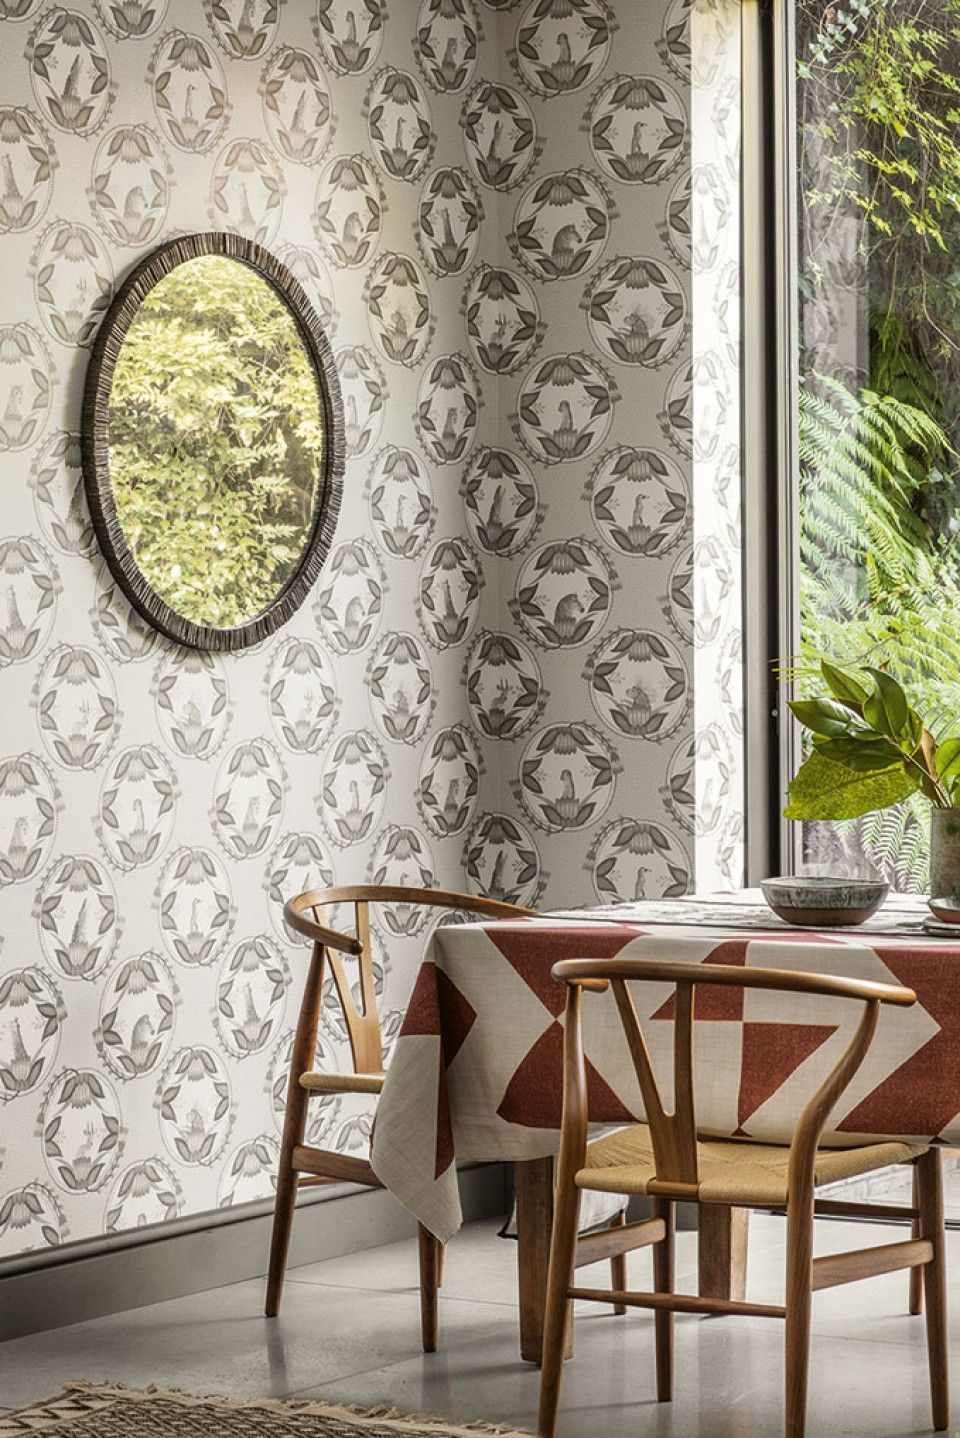 ardmore cameos wallpaper by cole son forms part of the new rh pinterest com